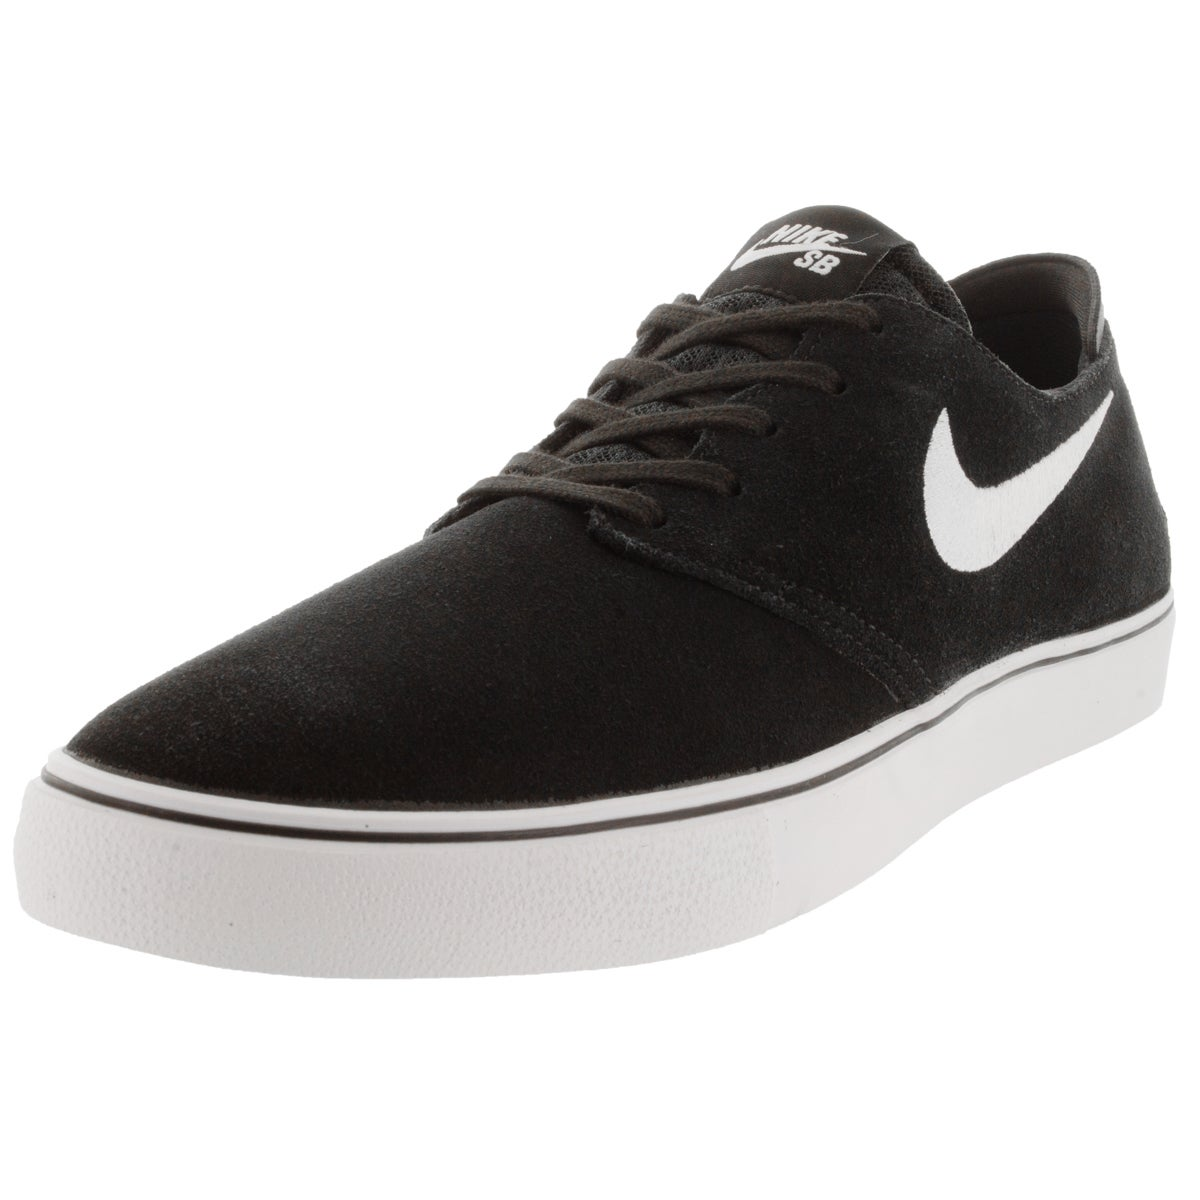 25f33ef40 Nike-Mens-Zoom-Oneshot-Sb-Black-White-Gum-Light-Brown-Skate-Shoe-54ffe8c3-b274-4d87-b2e8-a4bc47d913c1.jpg